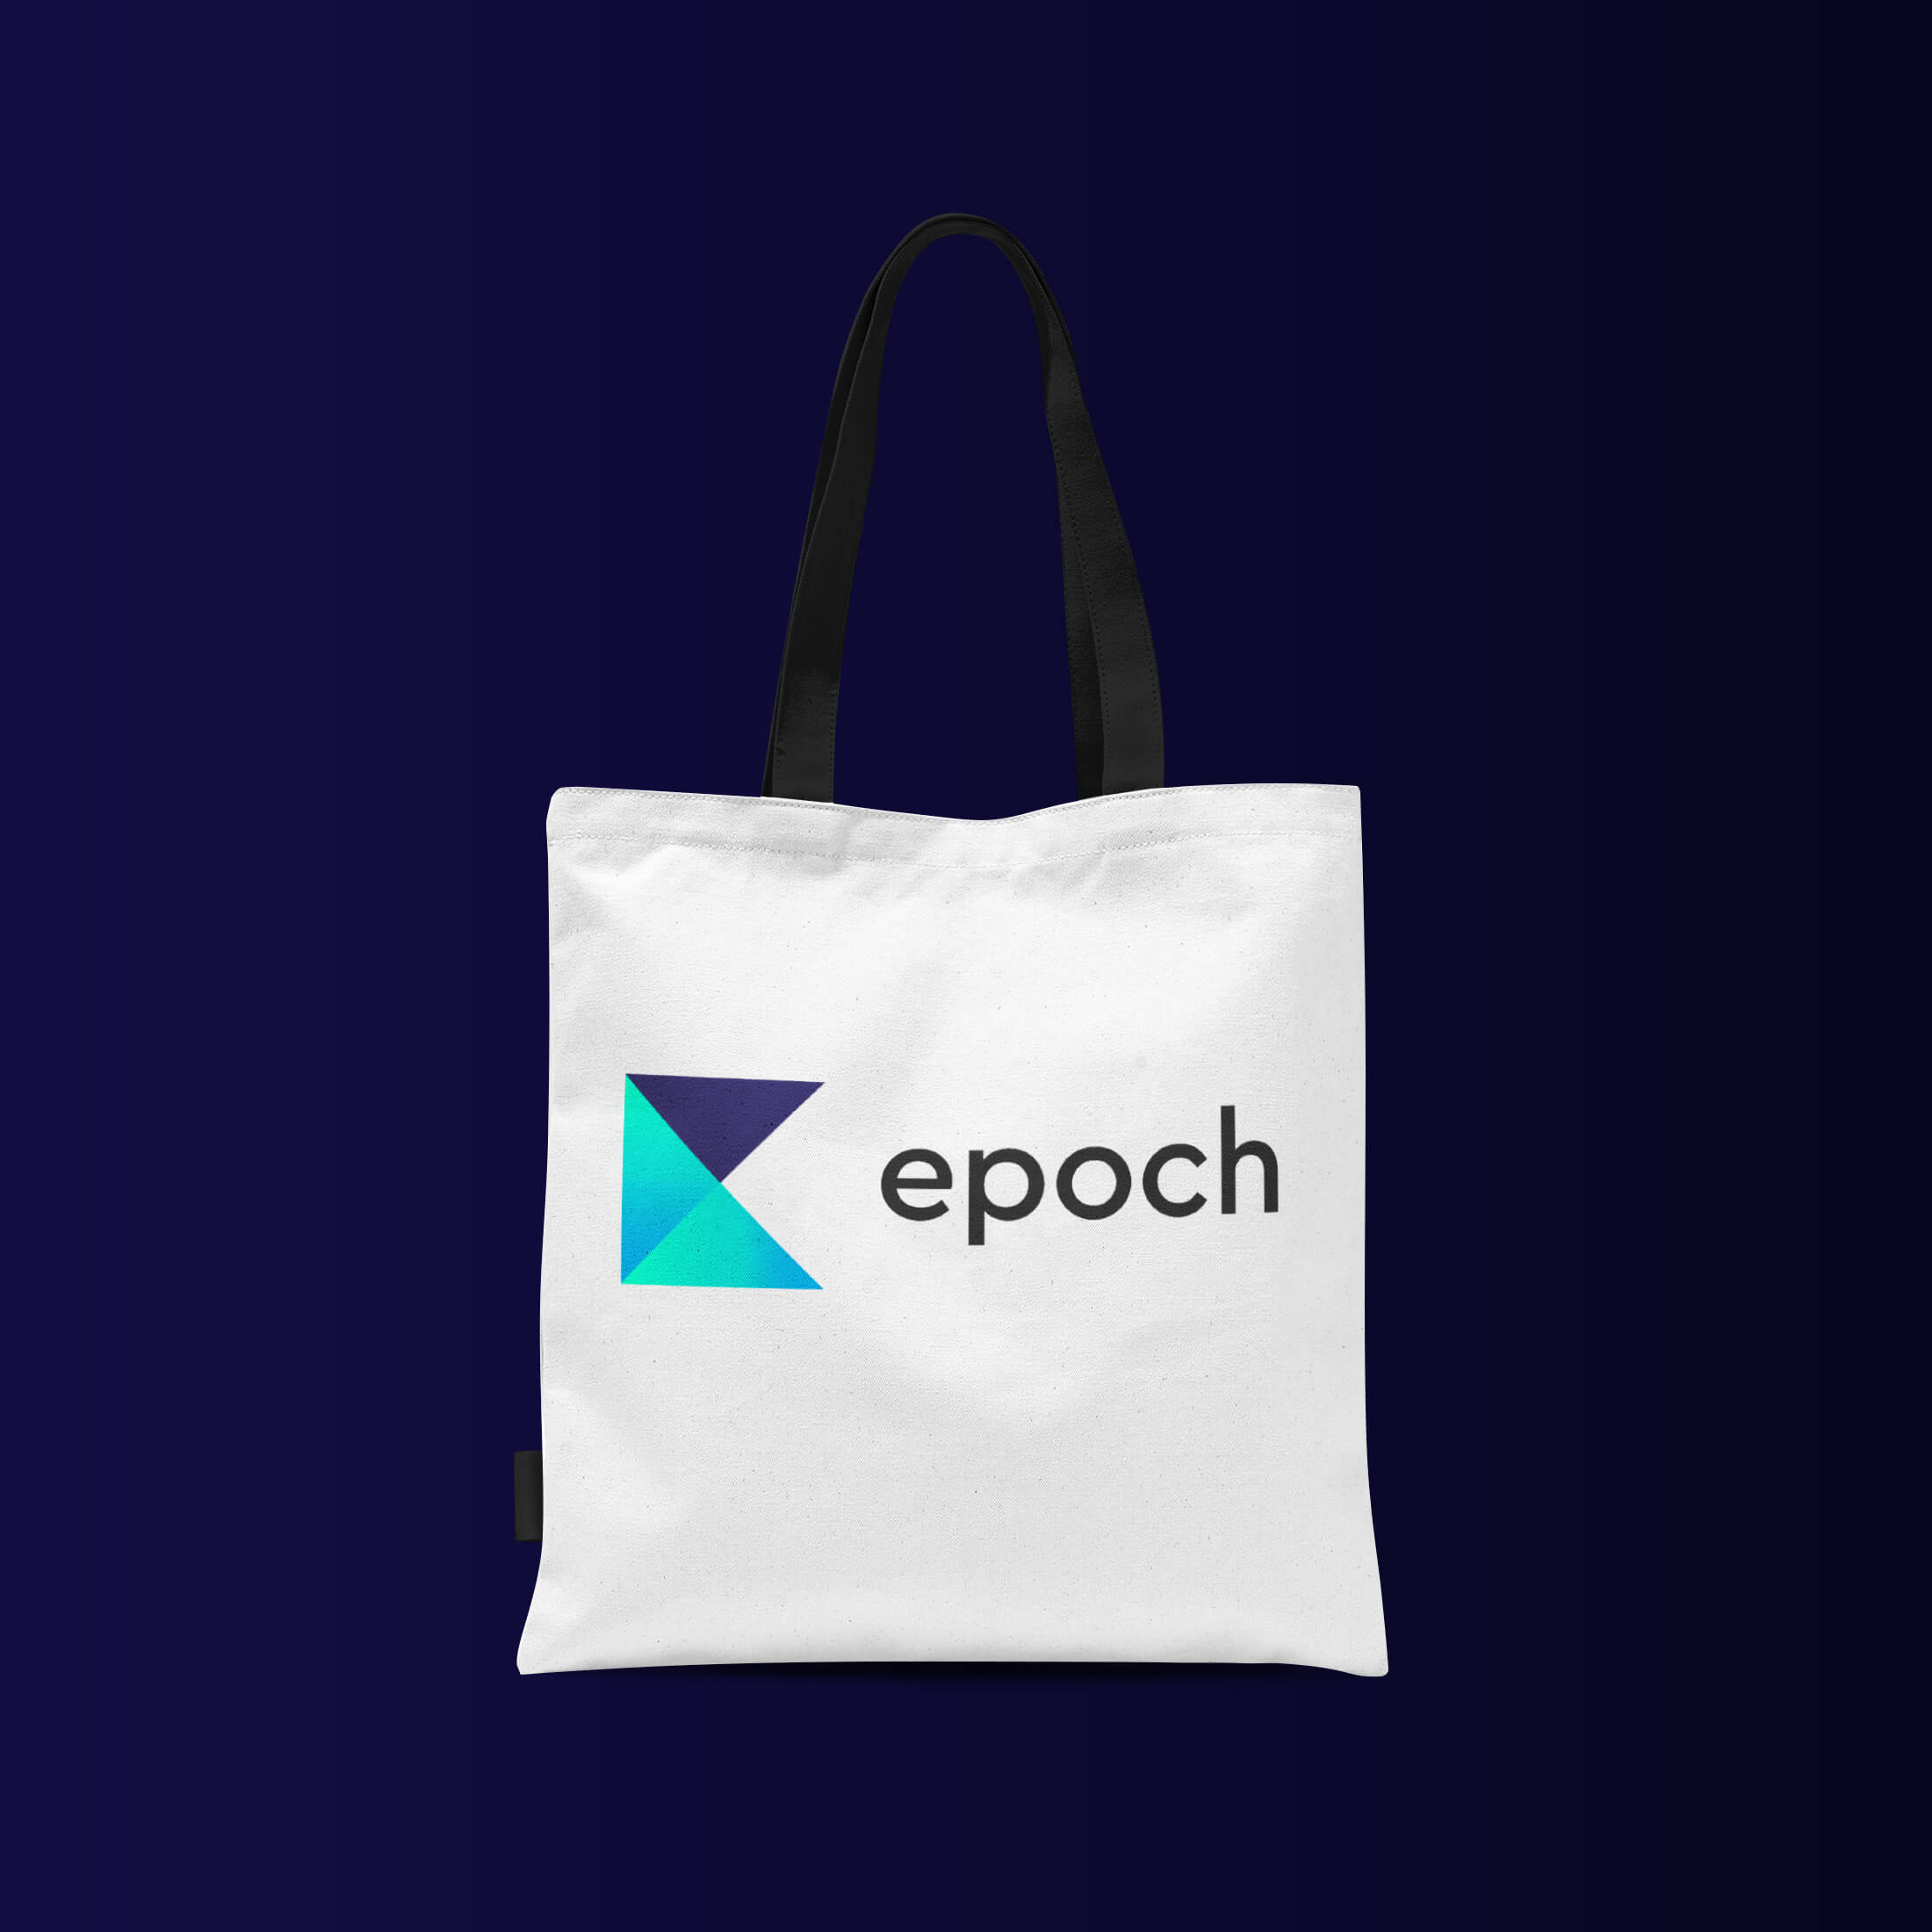 tote bag with epoch logo